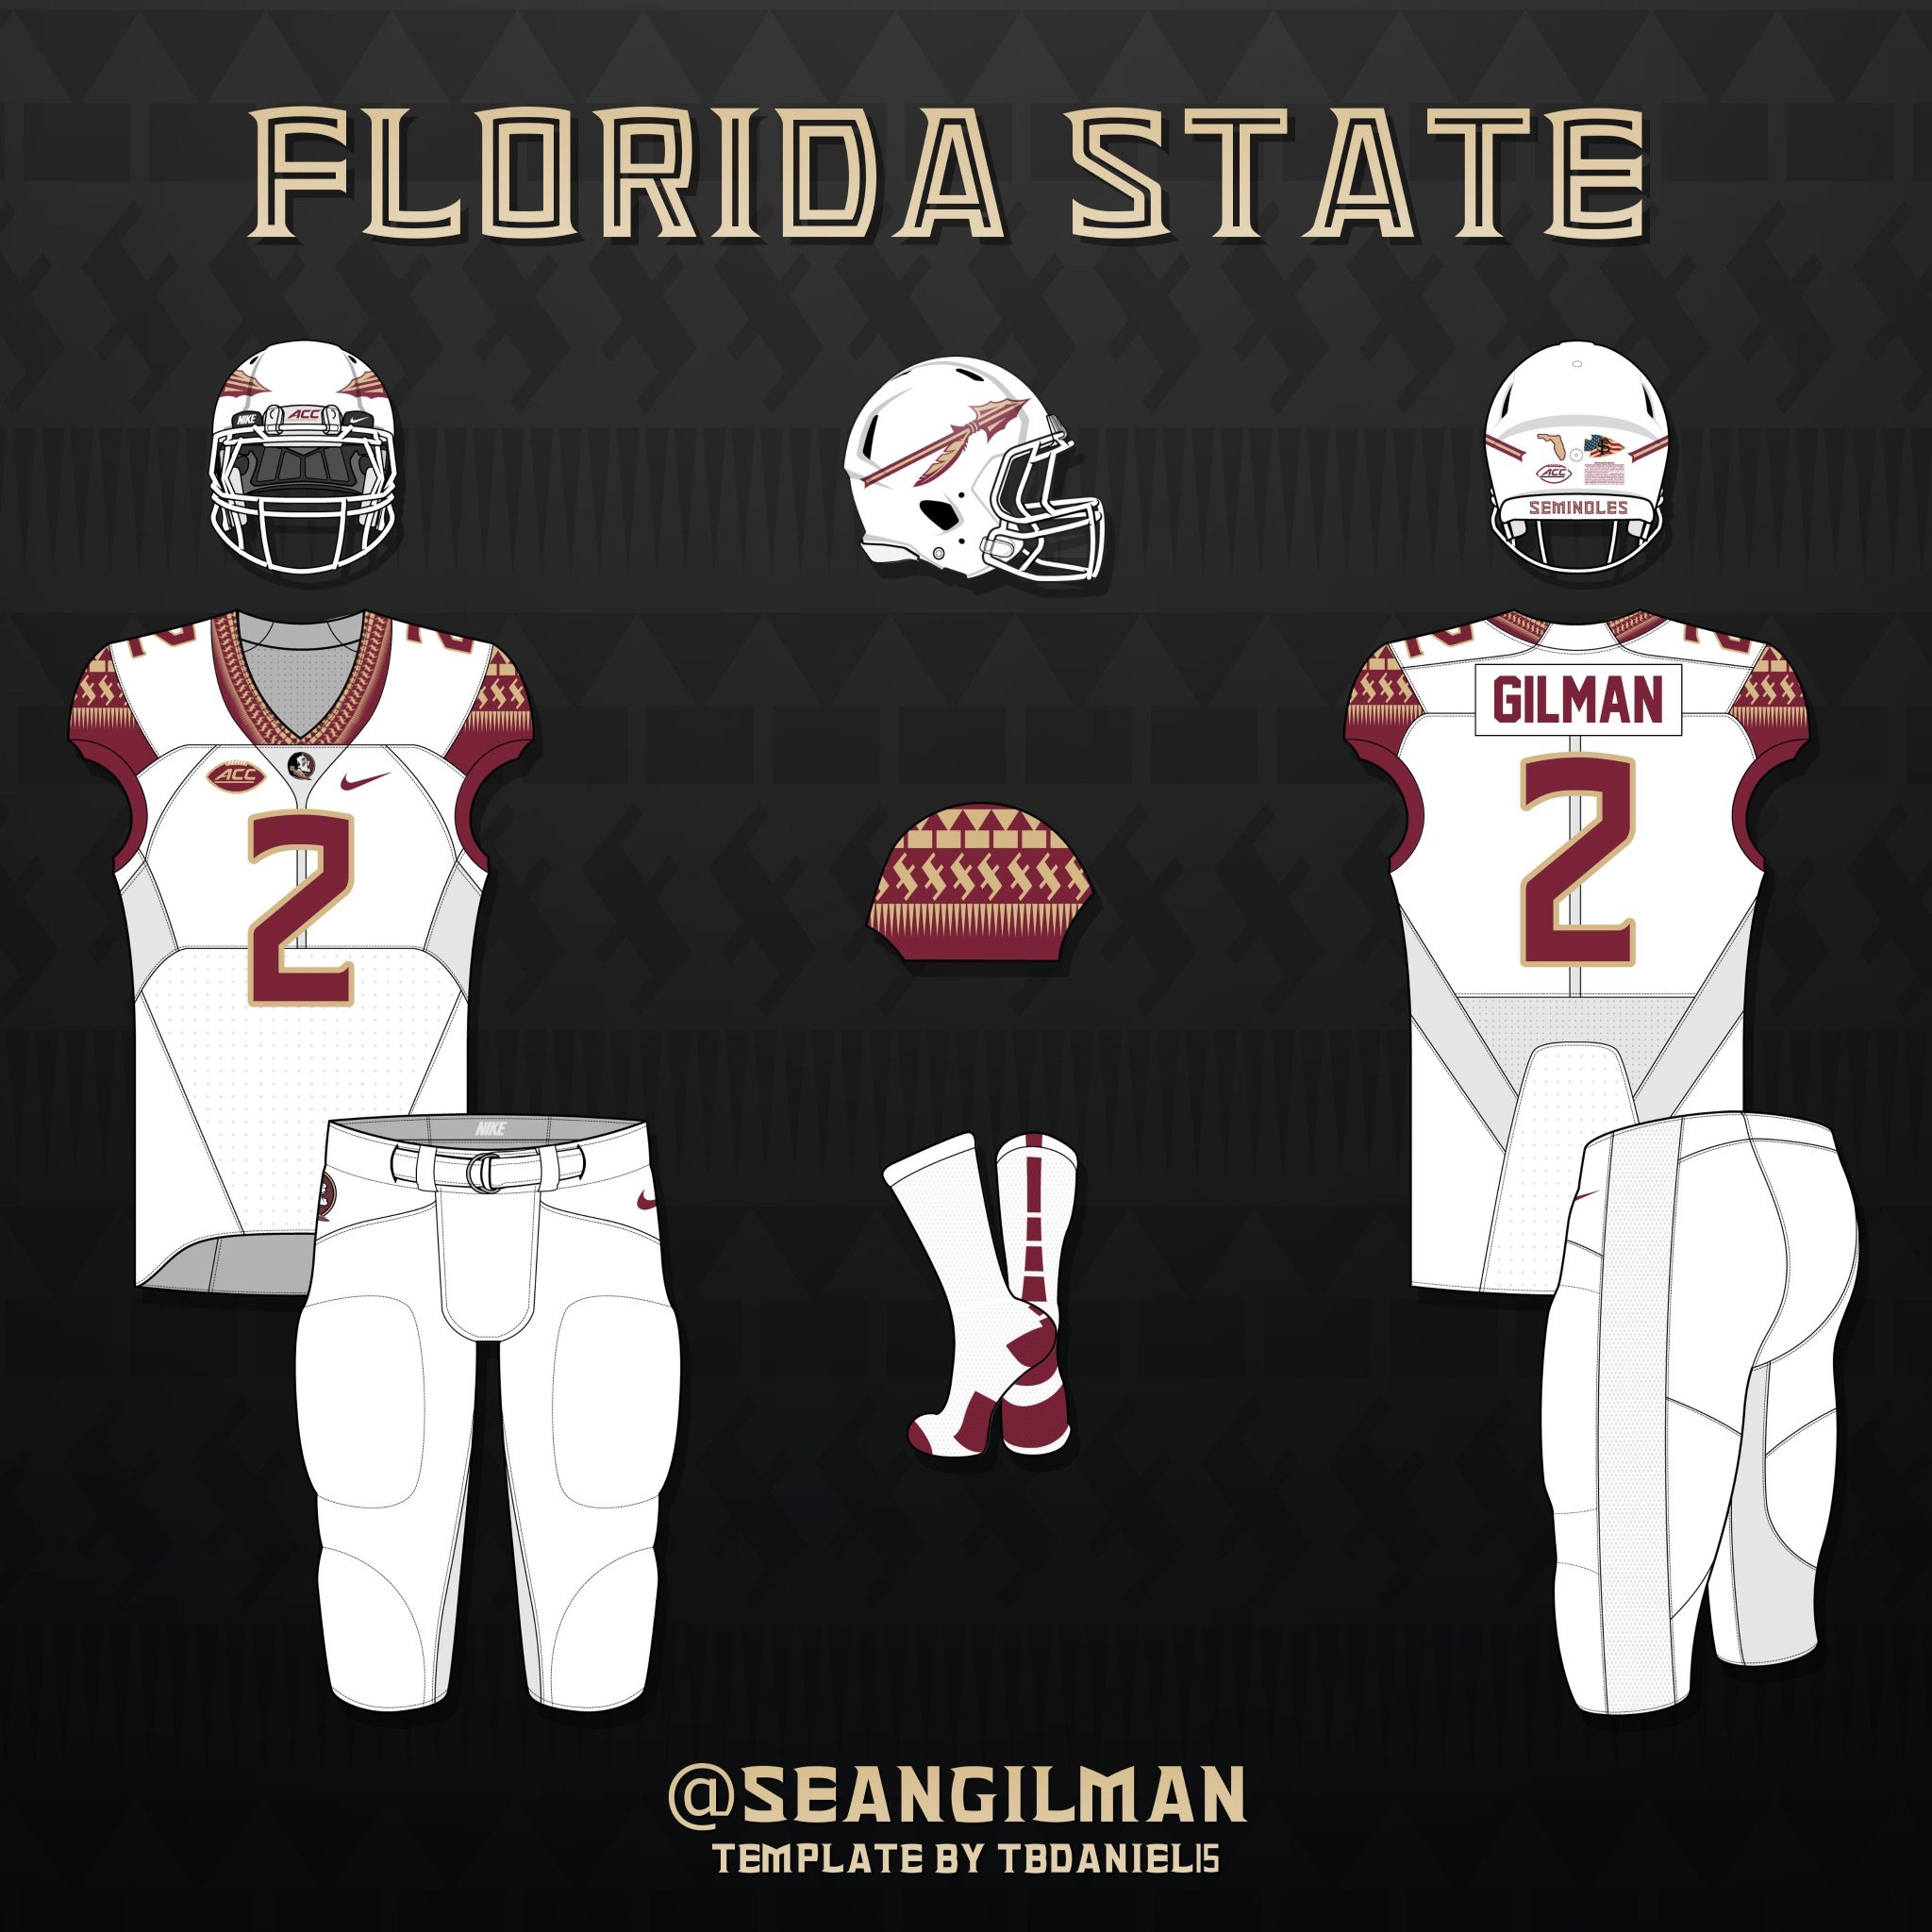 Florida State s fan base is usually thrilled to hear about the team wearing alternate  uniforms in games. It adds a bit more excitement for upcoming matchups ... 141c37854